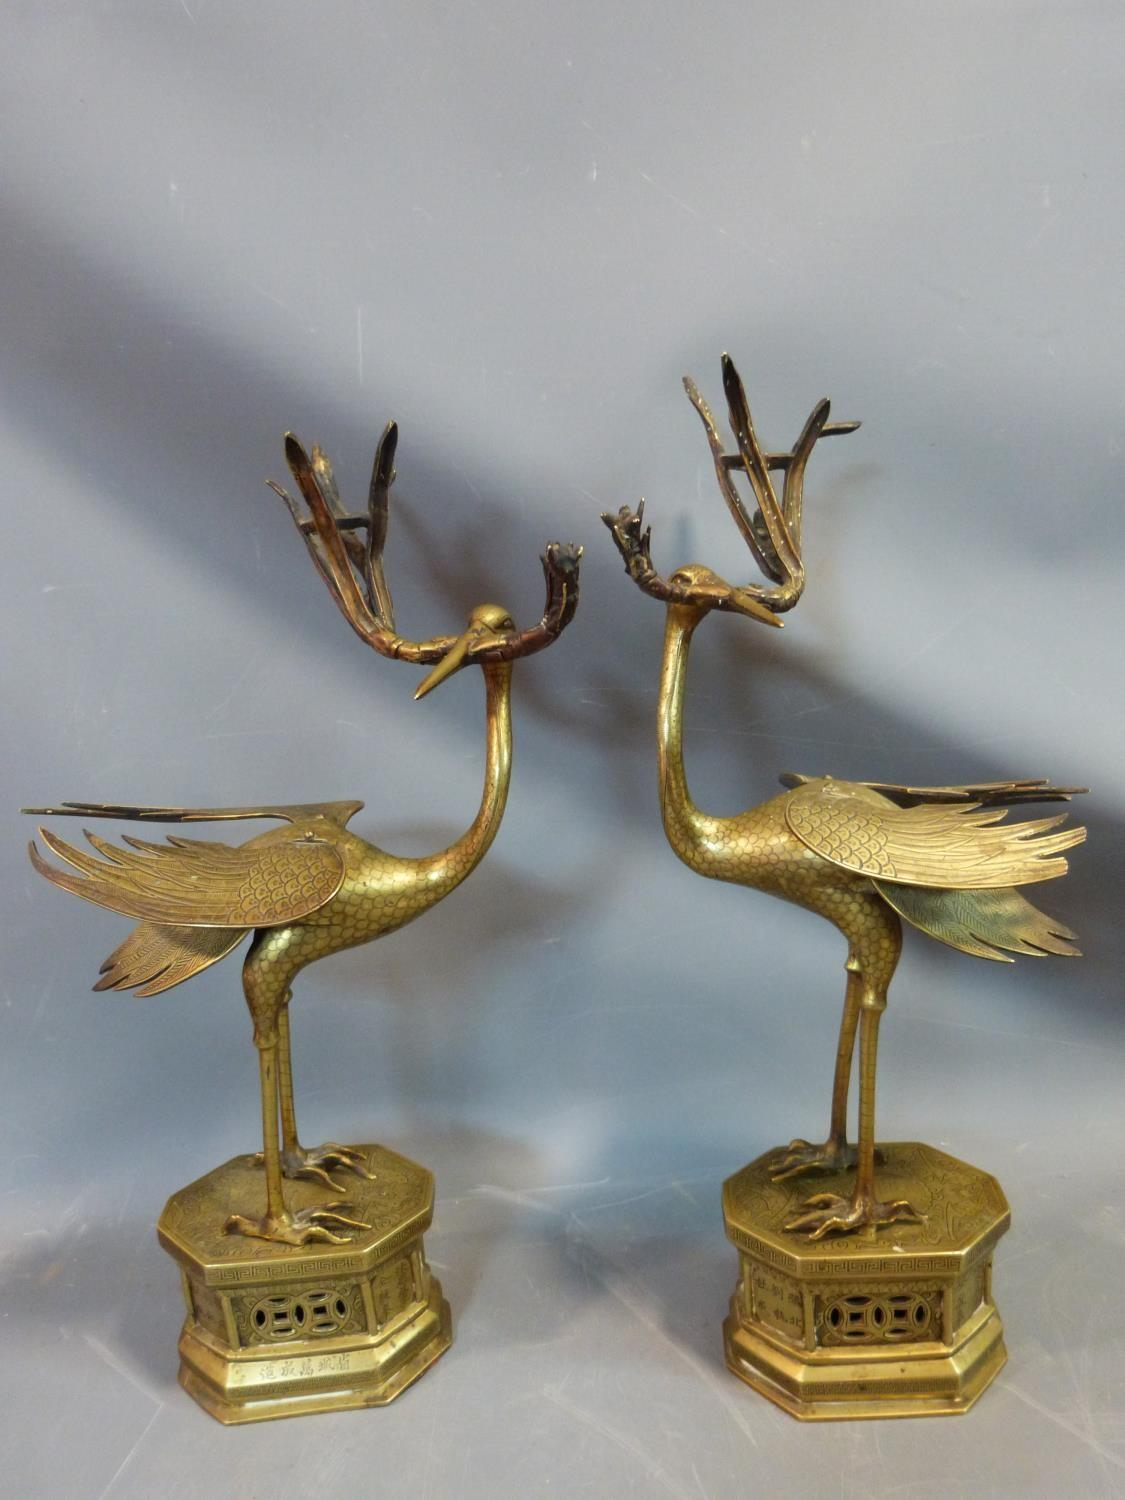 Lot 12 - A pair of 19th century brass Chinese herons holding bamboo shoot candlesticks, with engraved